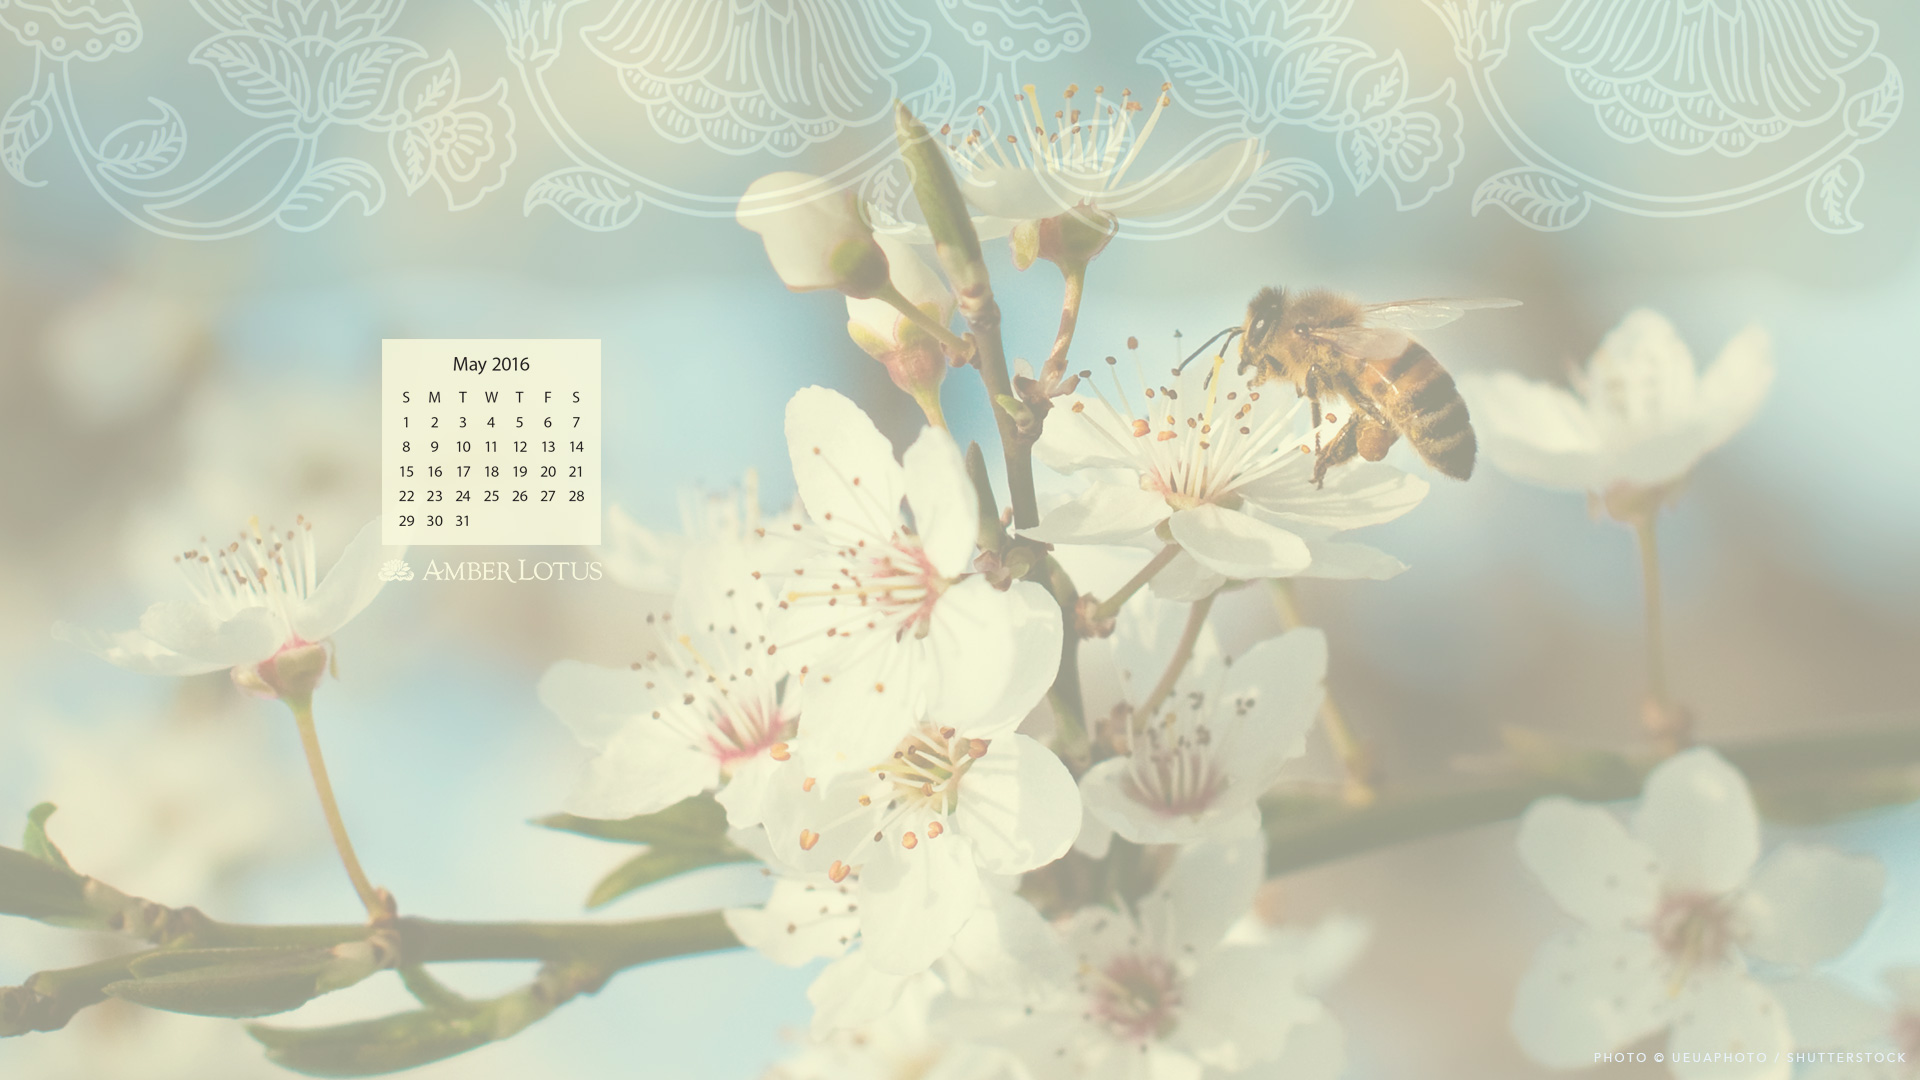 Calendar Wallpaper May : Desktop wallpaper calendar — may free to download